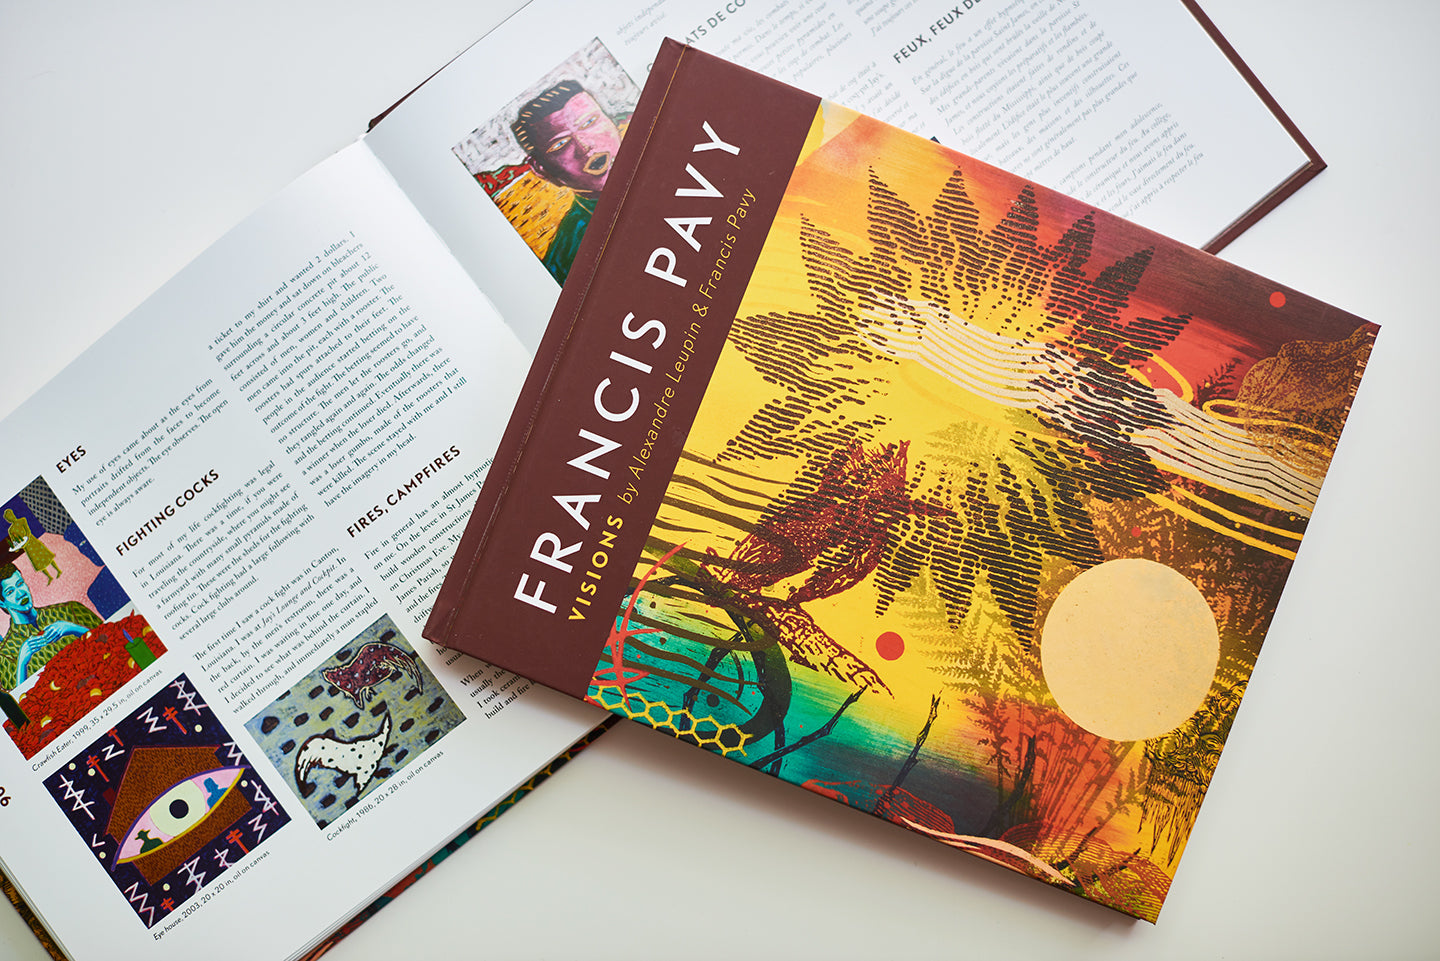 Francis Pavy Visions Book by Alexandre Leupin and Francis Pavy